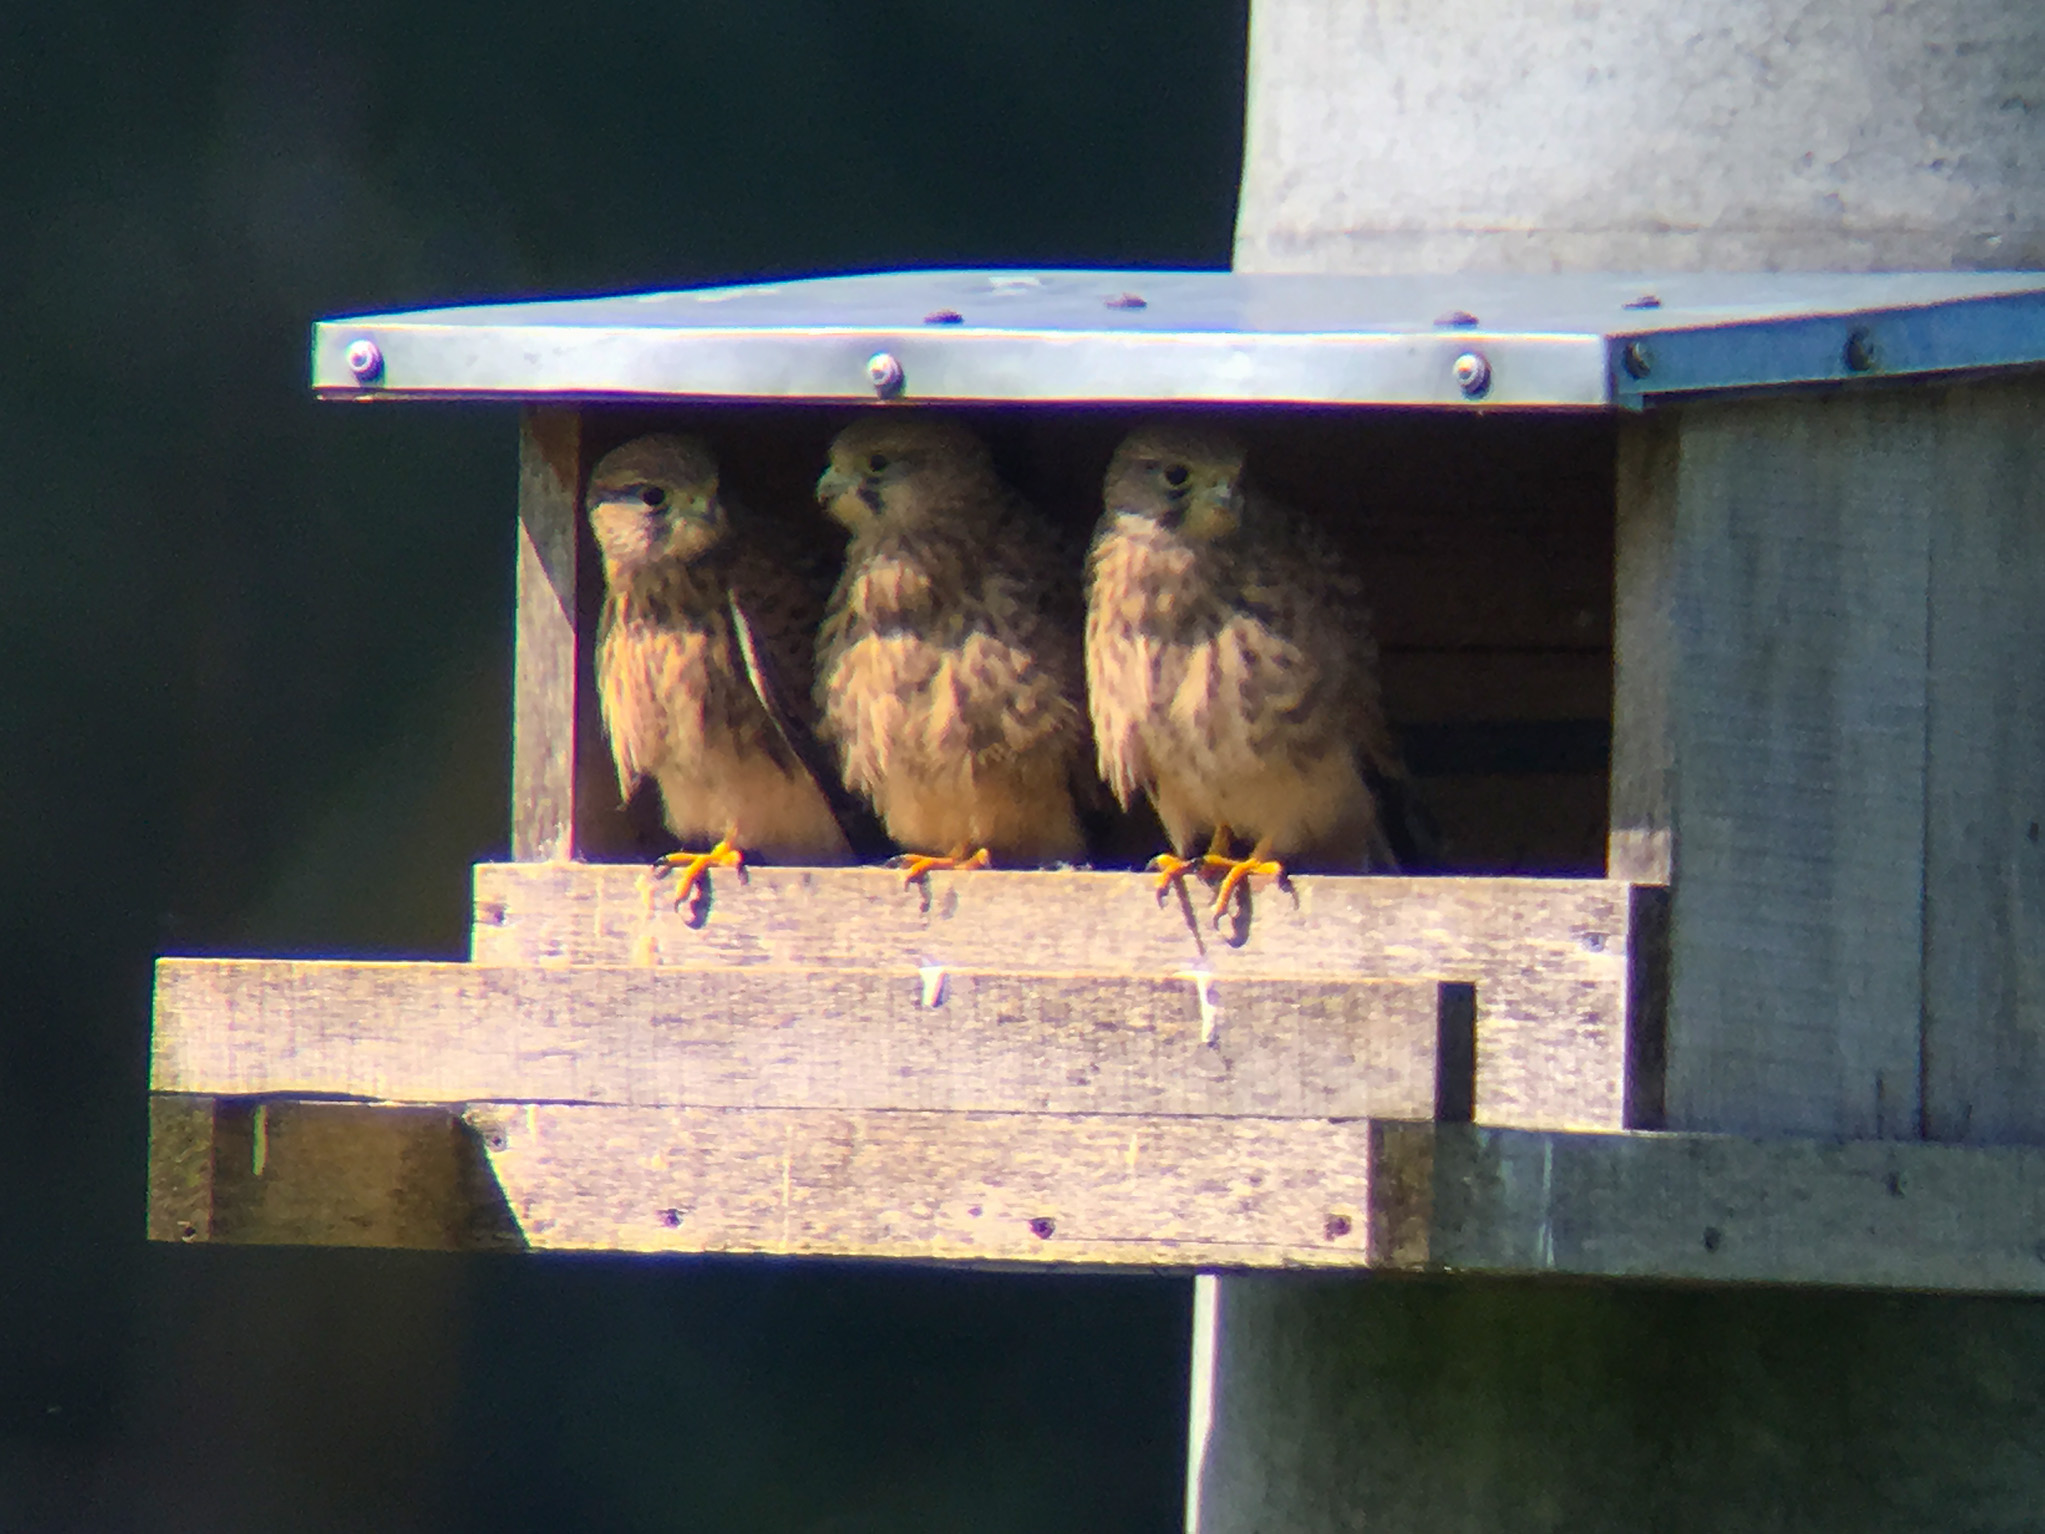 Overview of the Common Kestrels breeding season and occupation of nests in 2017